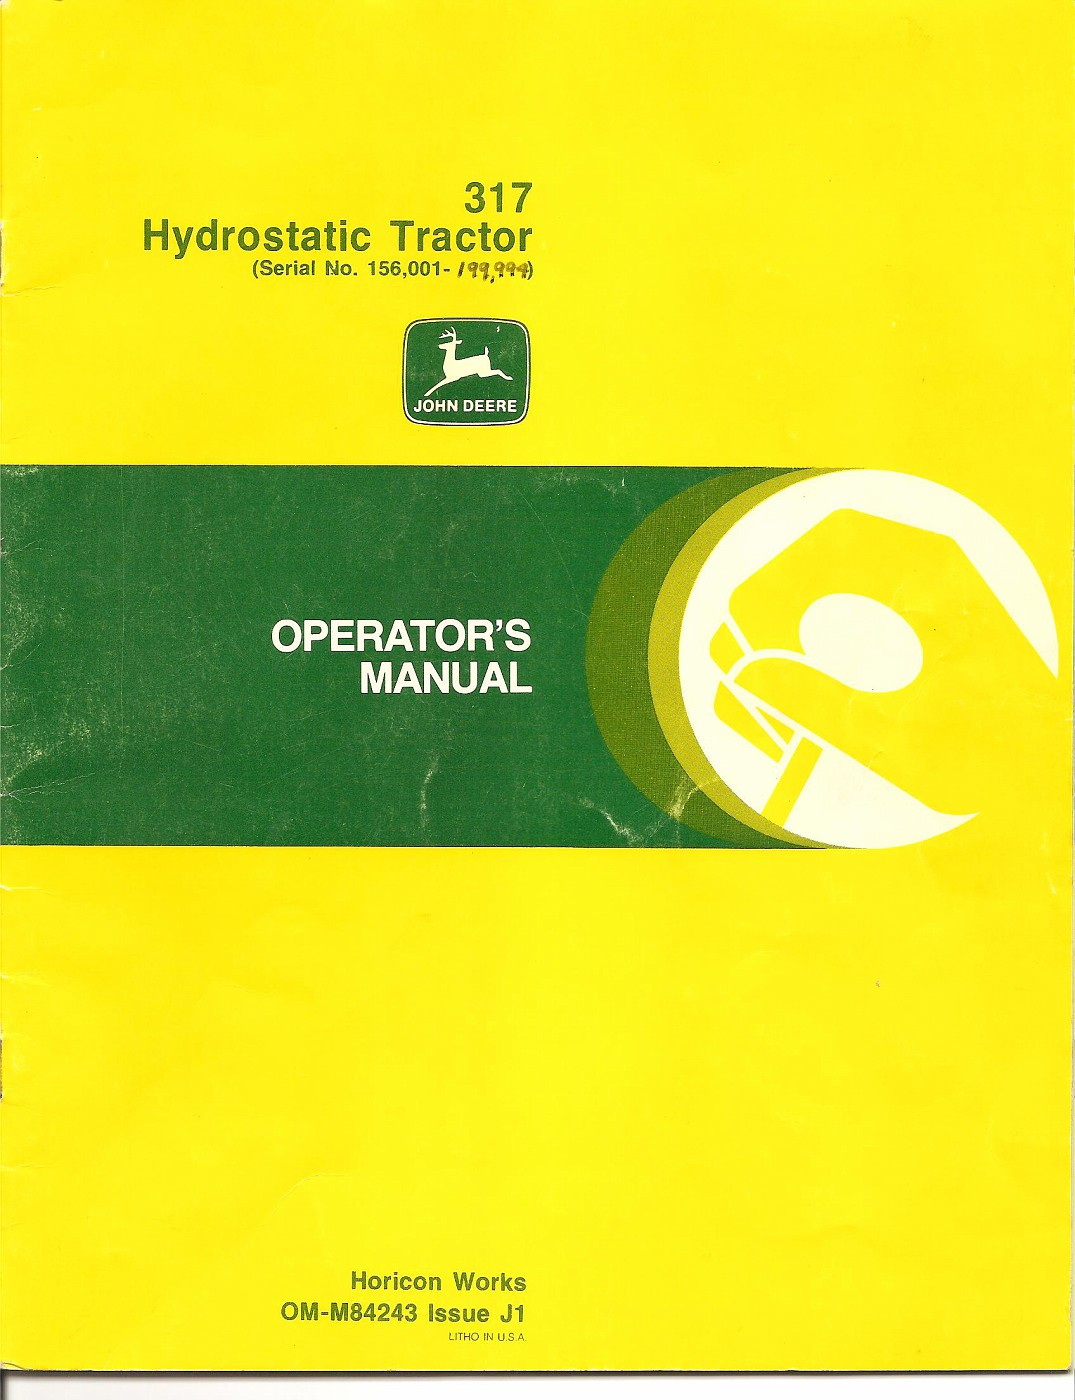 John Deere 317 Manual Manuals Www Lawn Tractor Wiring Diagram Tractordatacom Information